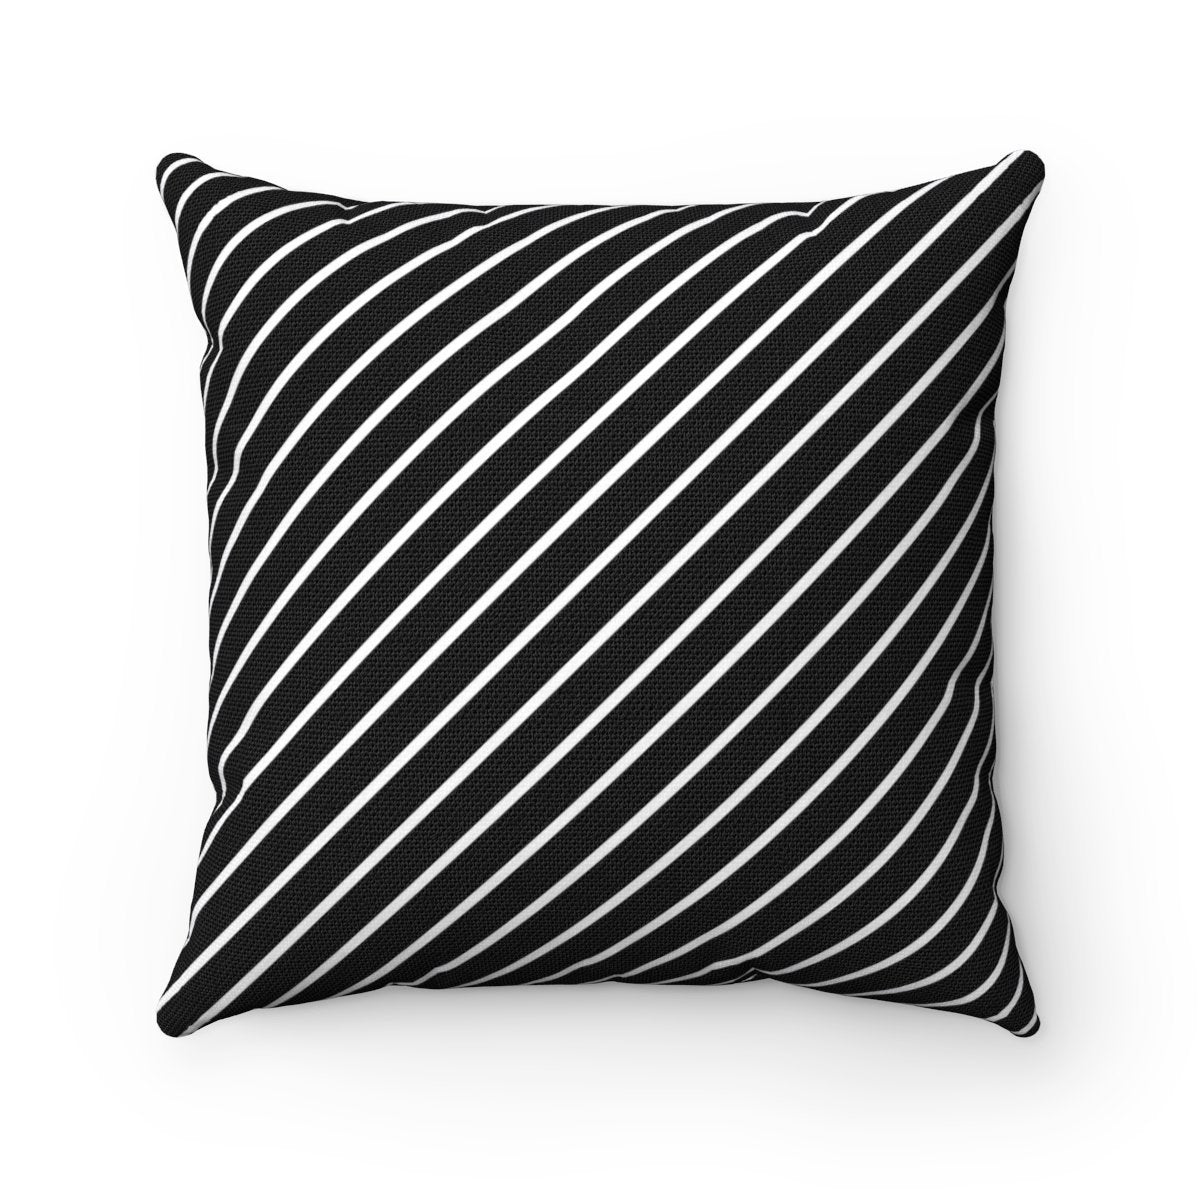 Striped decorative cushion cover-Home Decor - Decorative Accents - Pillows & Throws - Decorative Pillows-Maison d'Elite-14x14-Très Elite